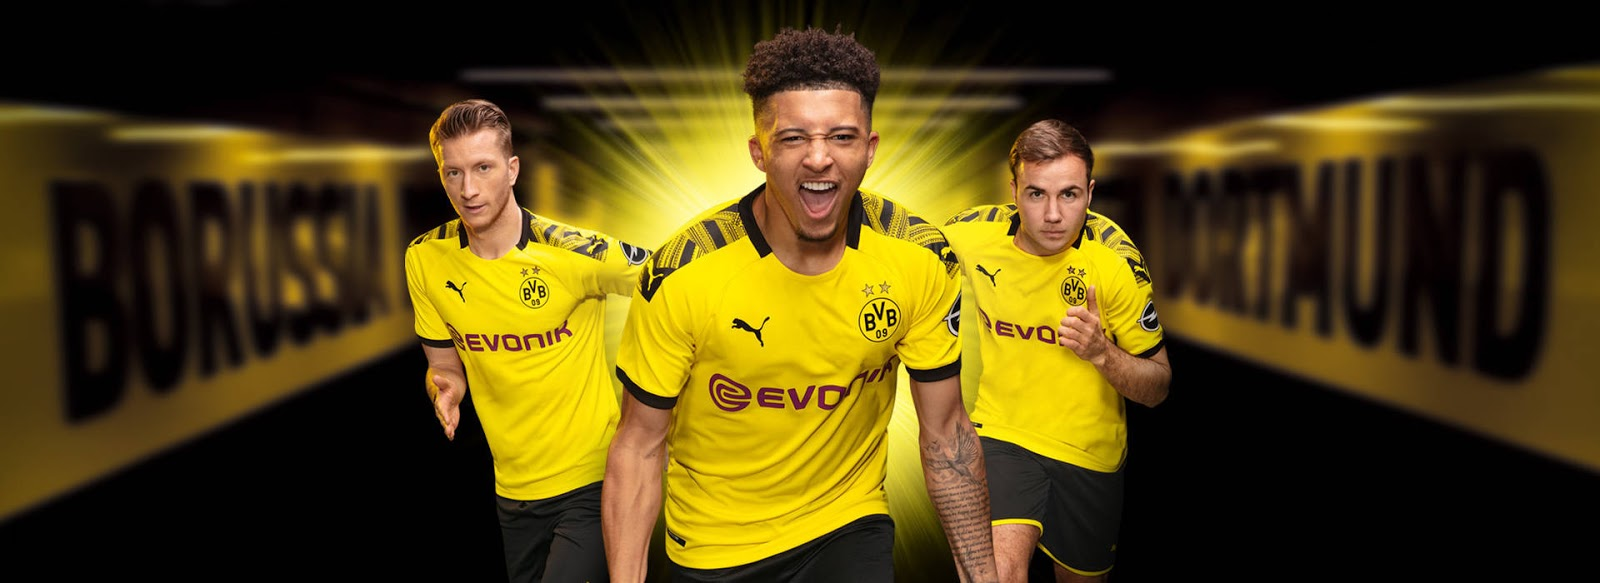 Borussia Dortmund 19 20 Home Kit Released Footy Headlines